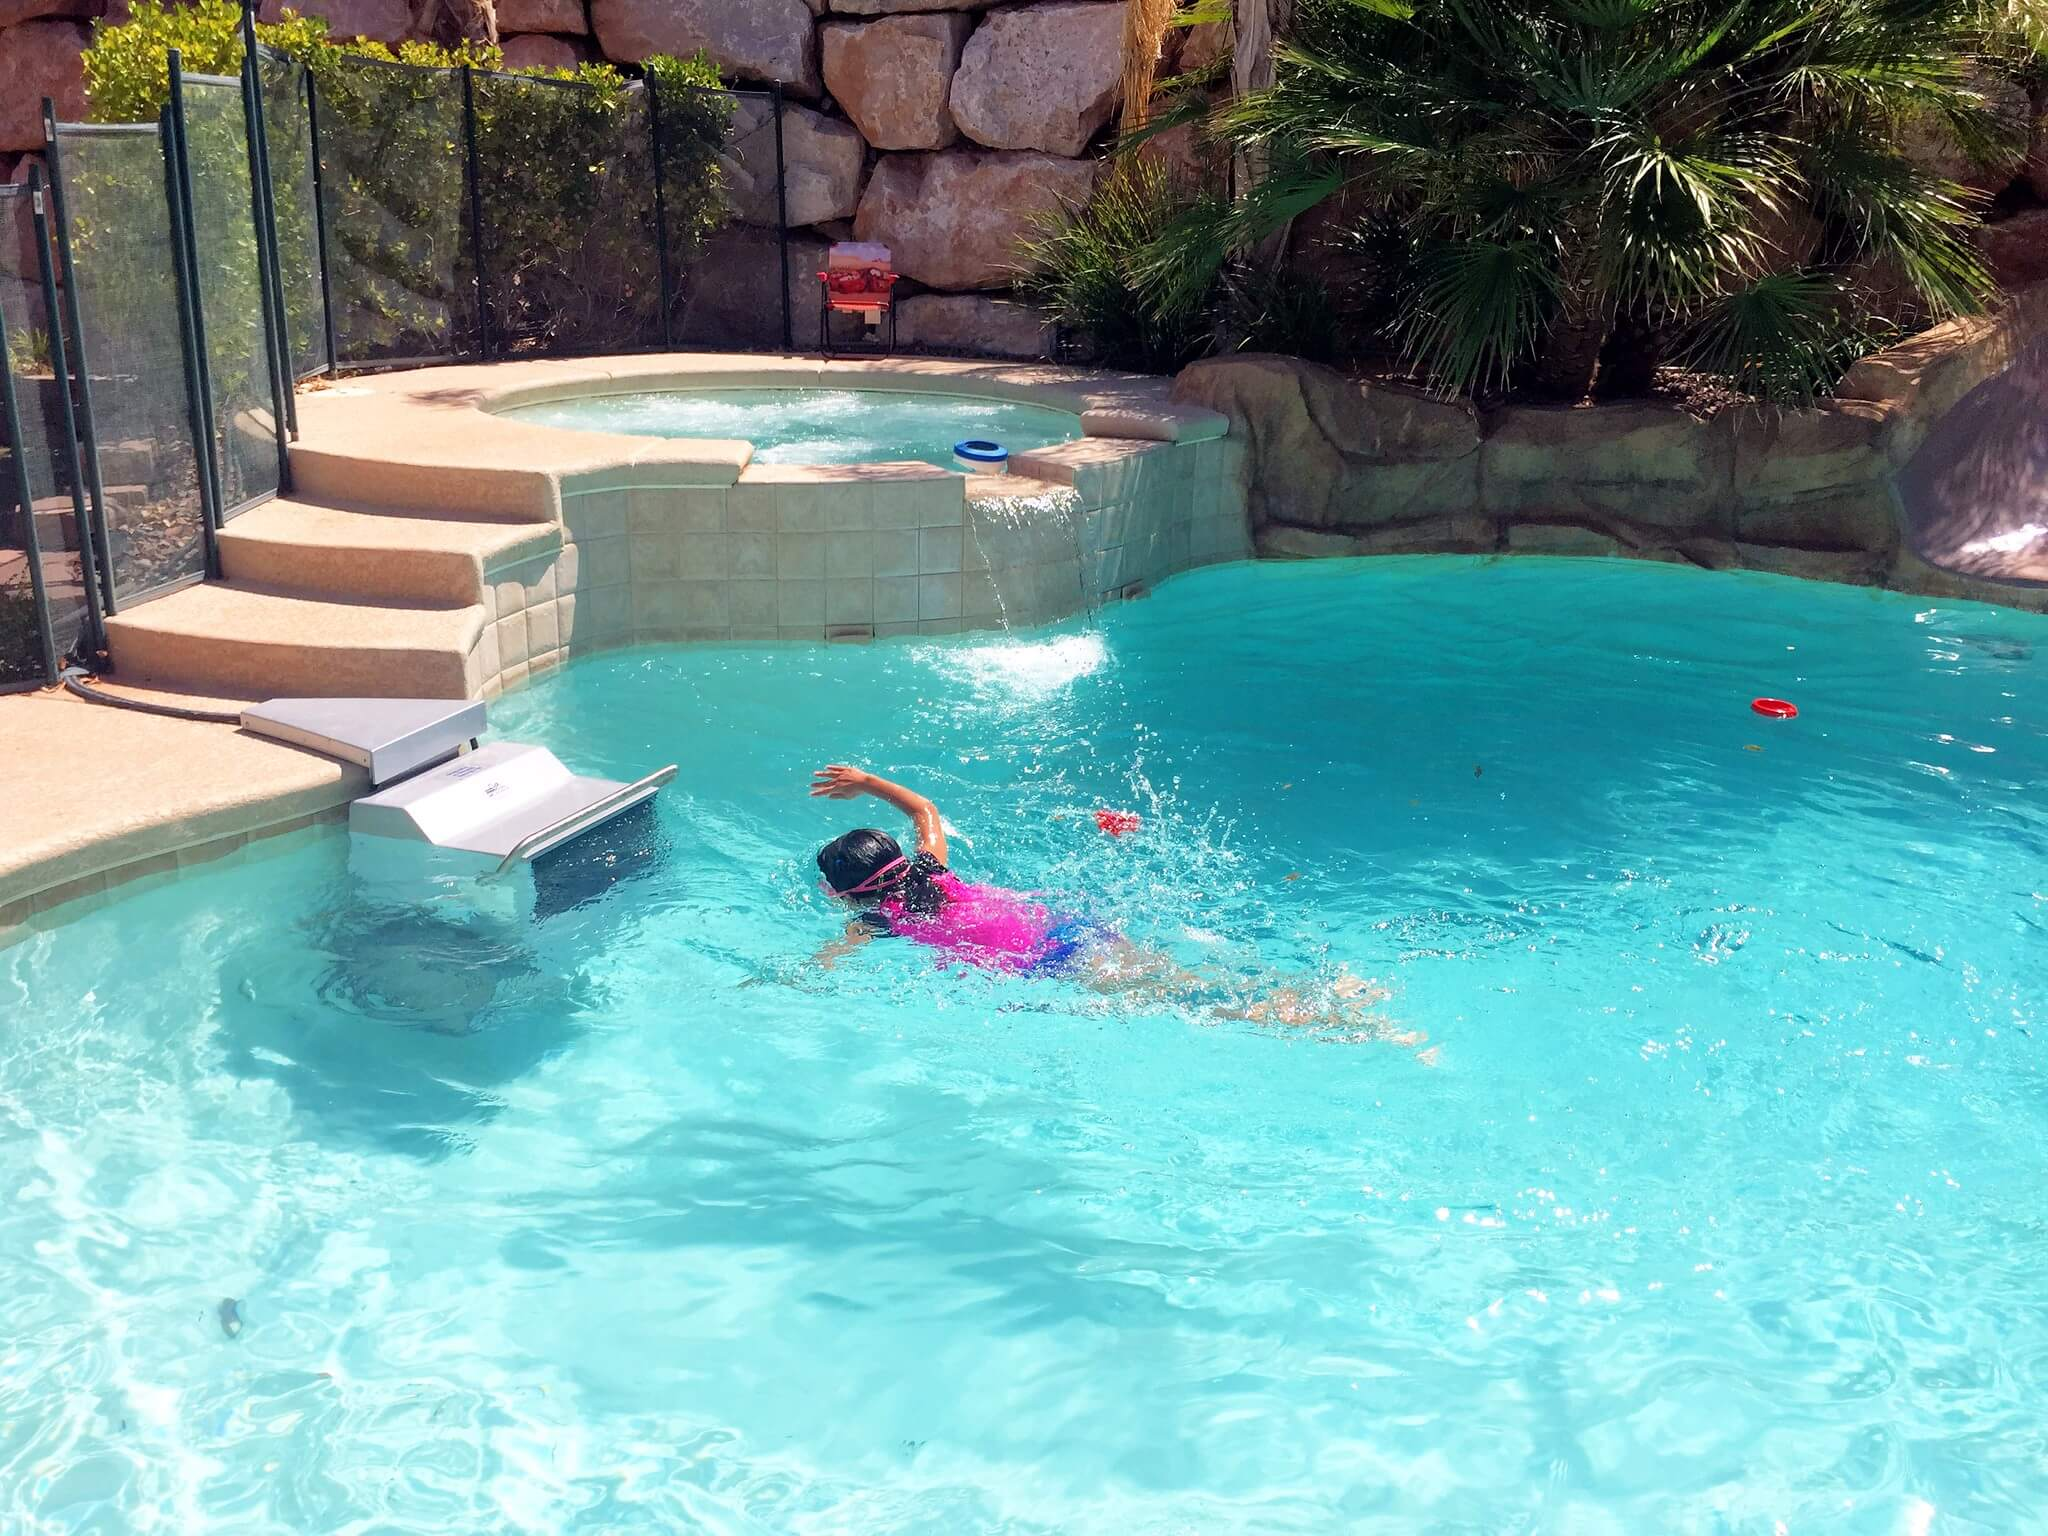 a young swimmer uses the Endless Pools Fastlane in a backyard pool